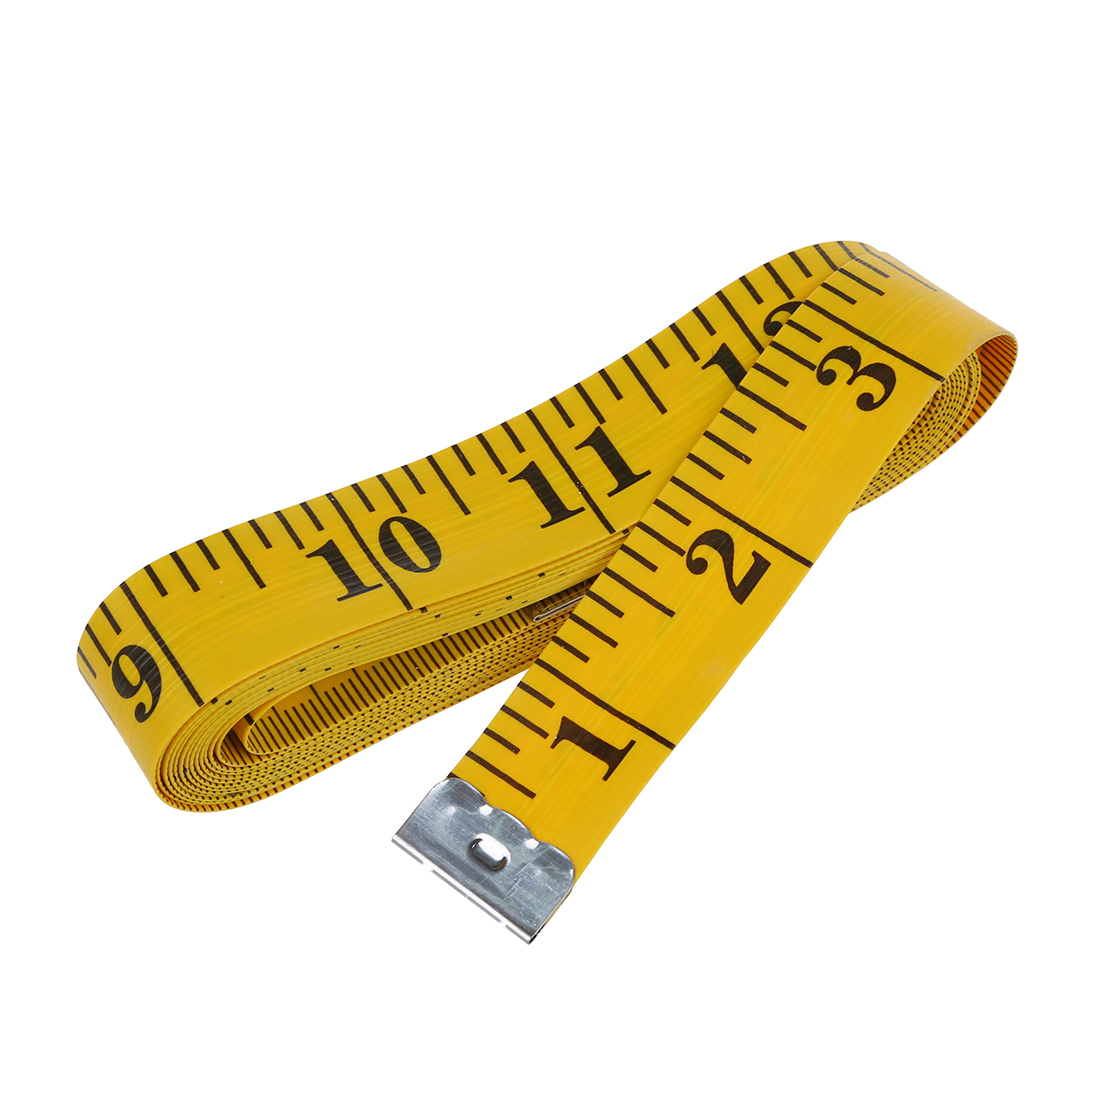 120 Inch Tape Measure Meter Tape Rule Of Tailor Ad Ebay